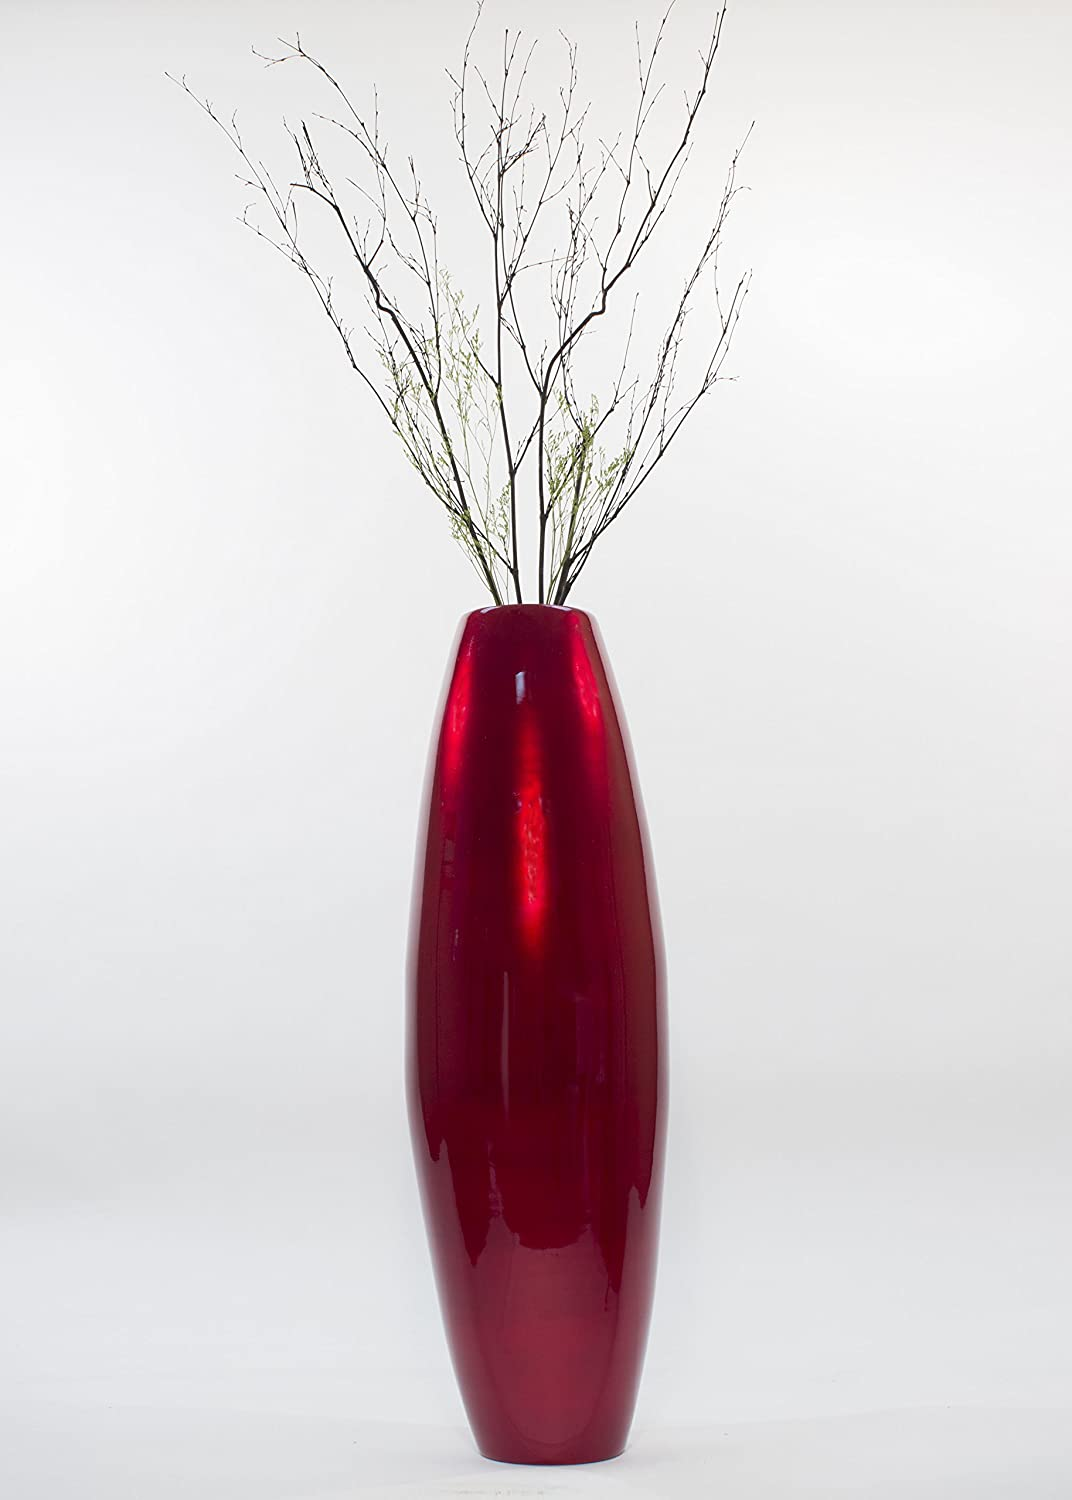 Amazon greenfloralcrafts 36 in bamboo cylinder floor vase amazon greenfloralcrafts 36 in bamboo cylinder floor vase birch branches mahogany red home kitchen reviewsmspy